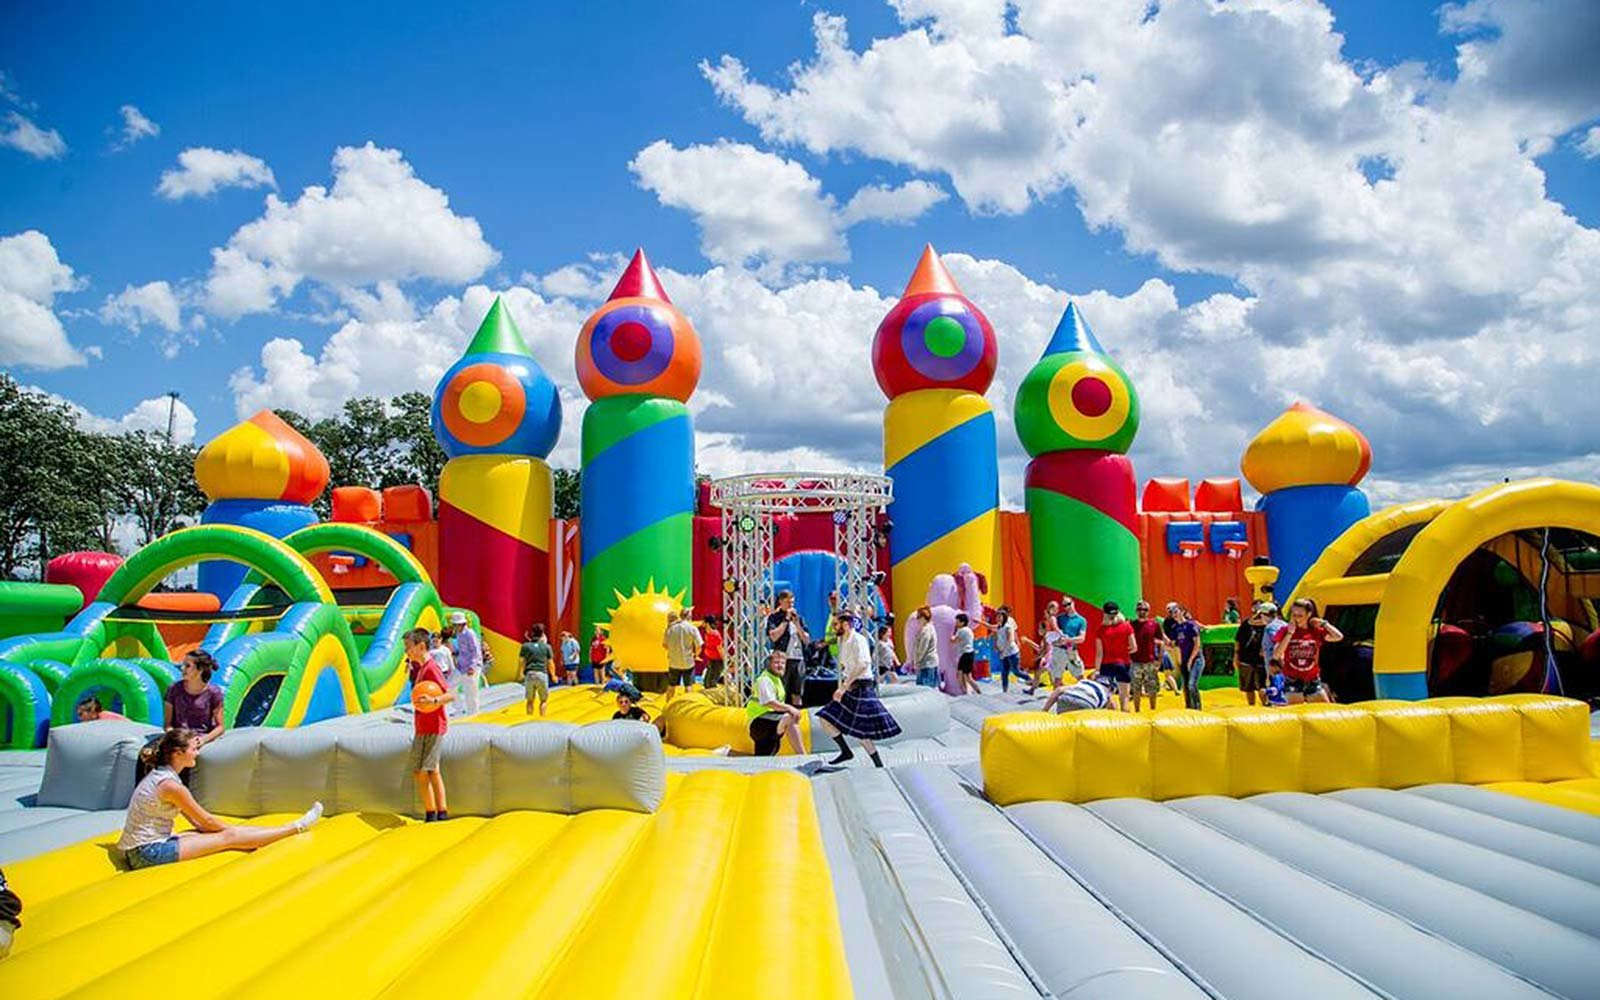 Largest Bounce House World Record Set By The Big Bounce